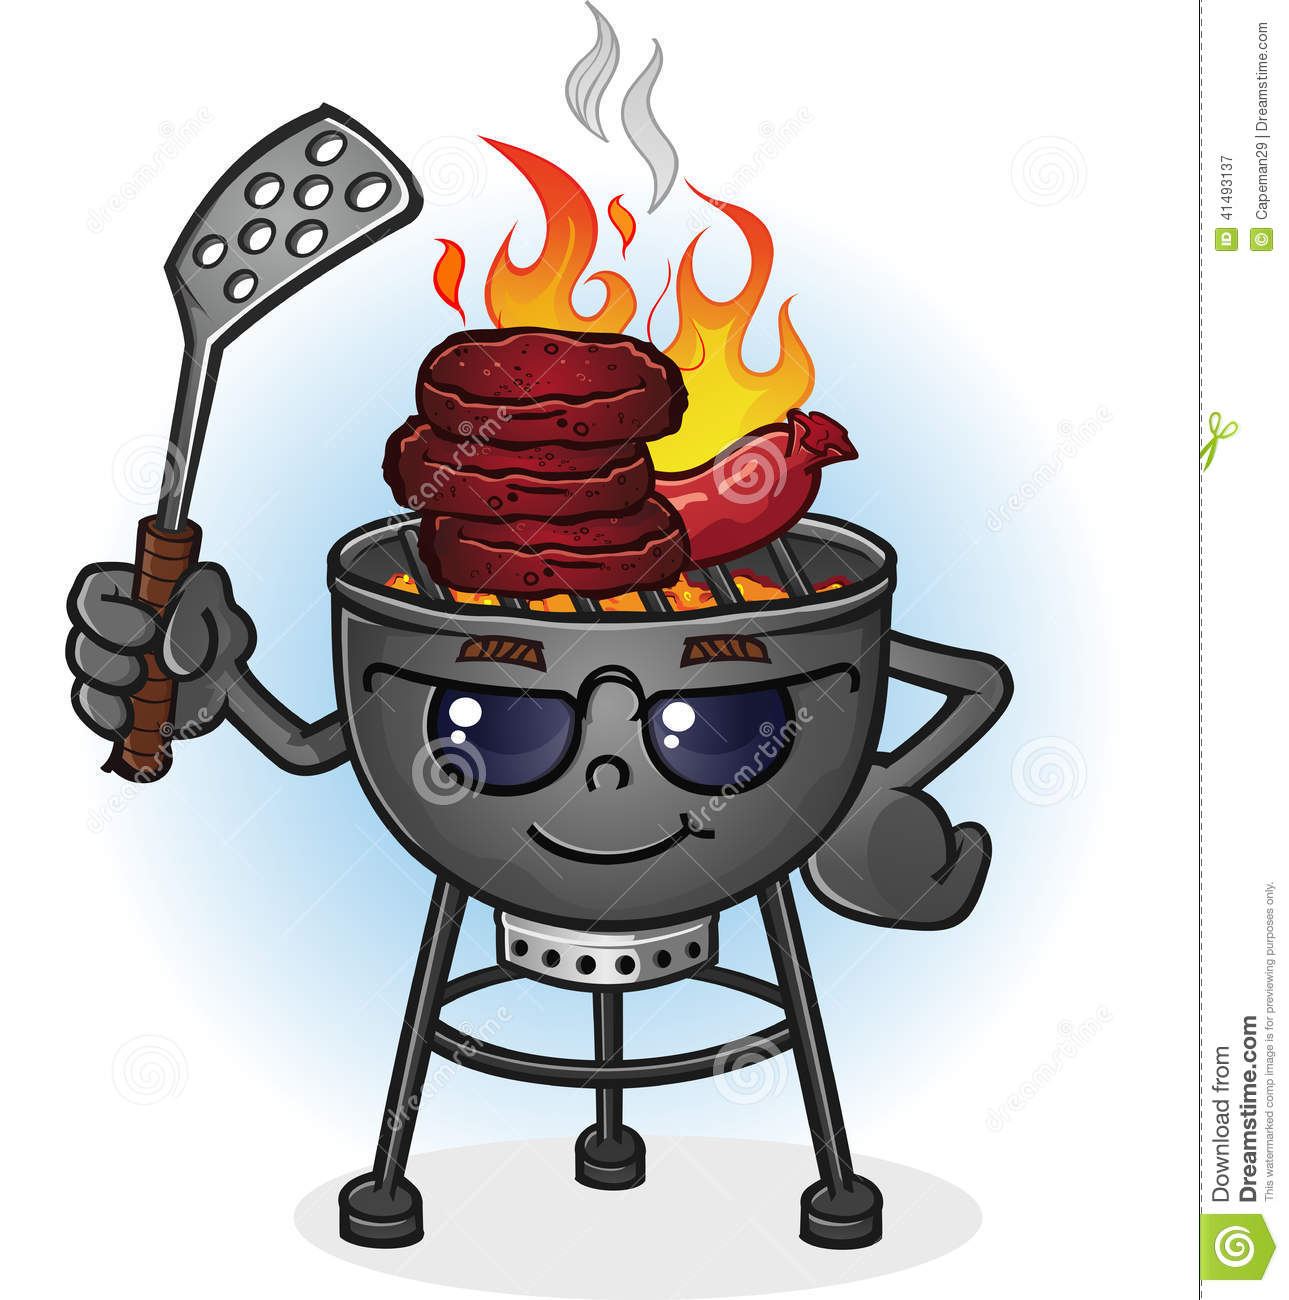 Barbecue grill cartoon character with attitude stock